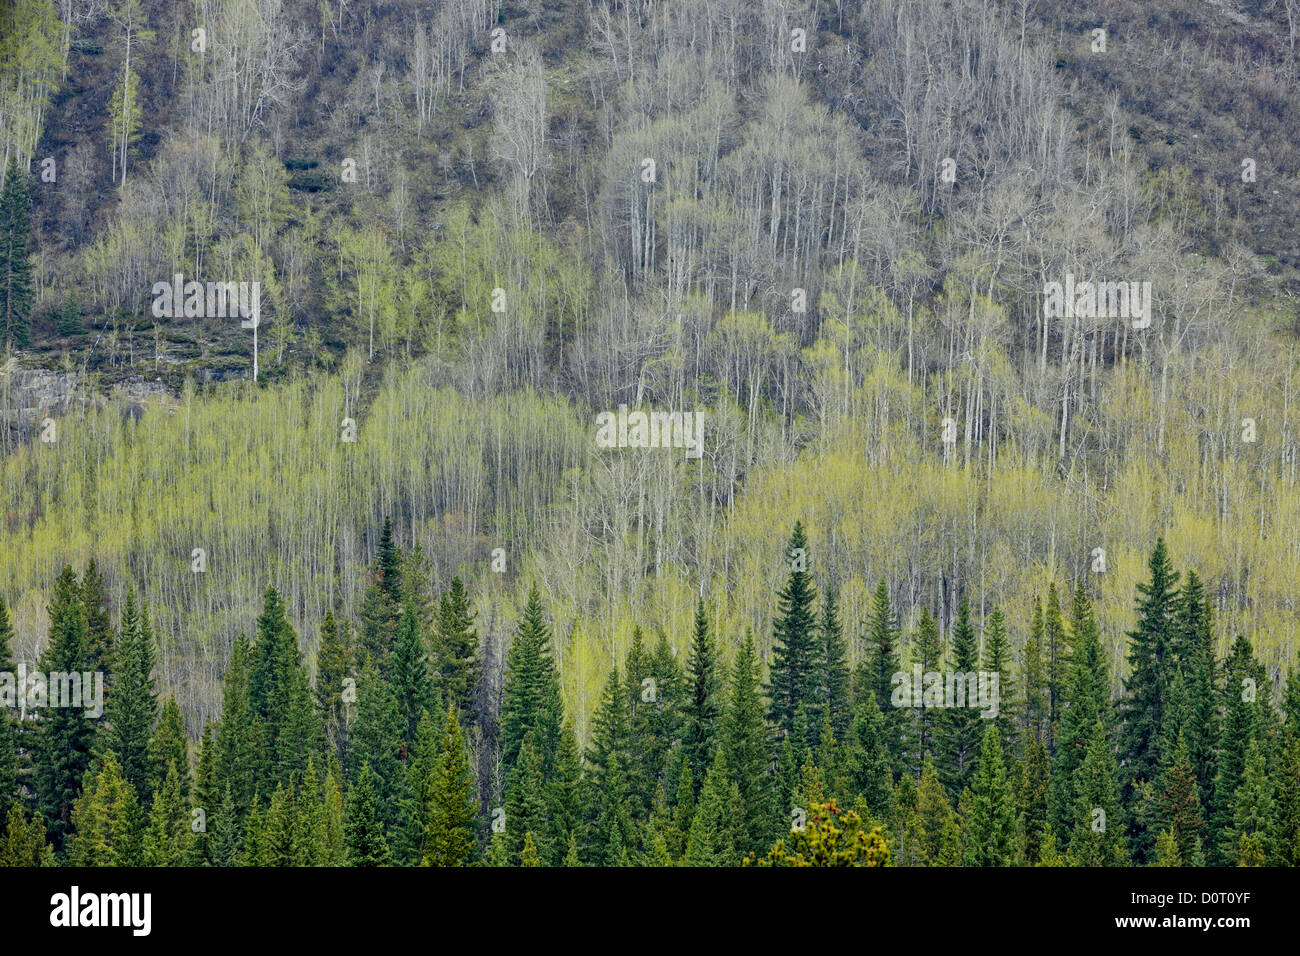 Slopes of Saskatchewan River Valley with aspens leafing out, Banff National Park, Alberta, Canada - Stock Image